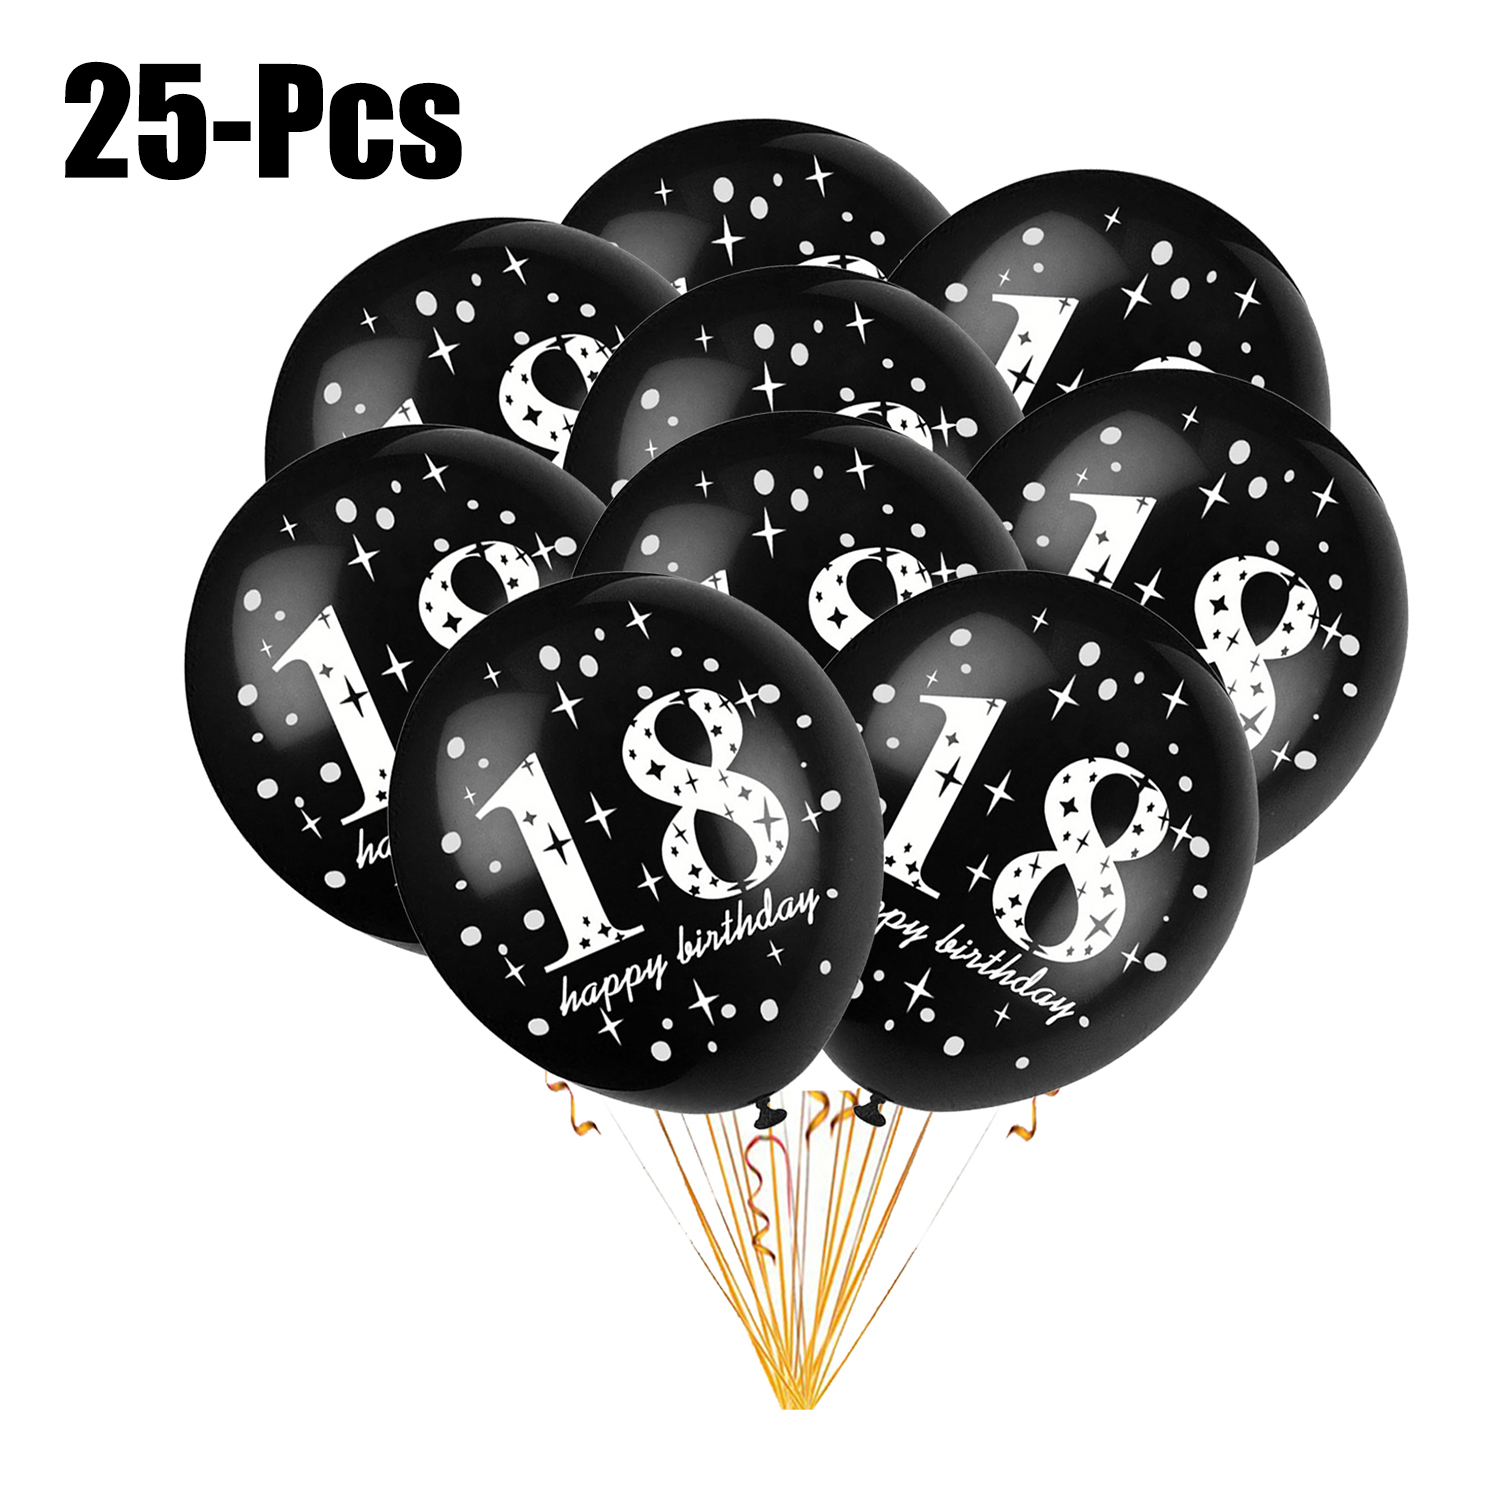 25PCS 12in Latex Balloons,Justdolife Thickened 18th Happy Birthday Balloons Decorative Balloons Party Decor Balloons Party Accessories Supplies